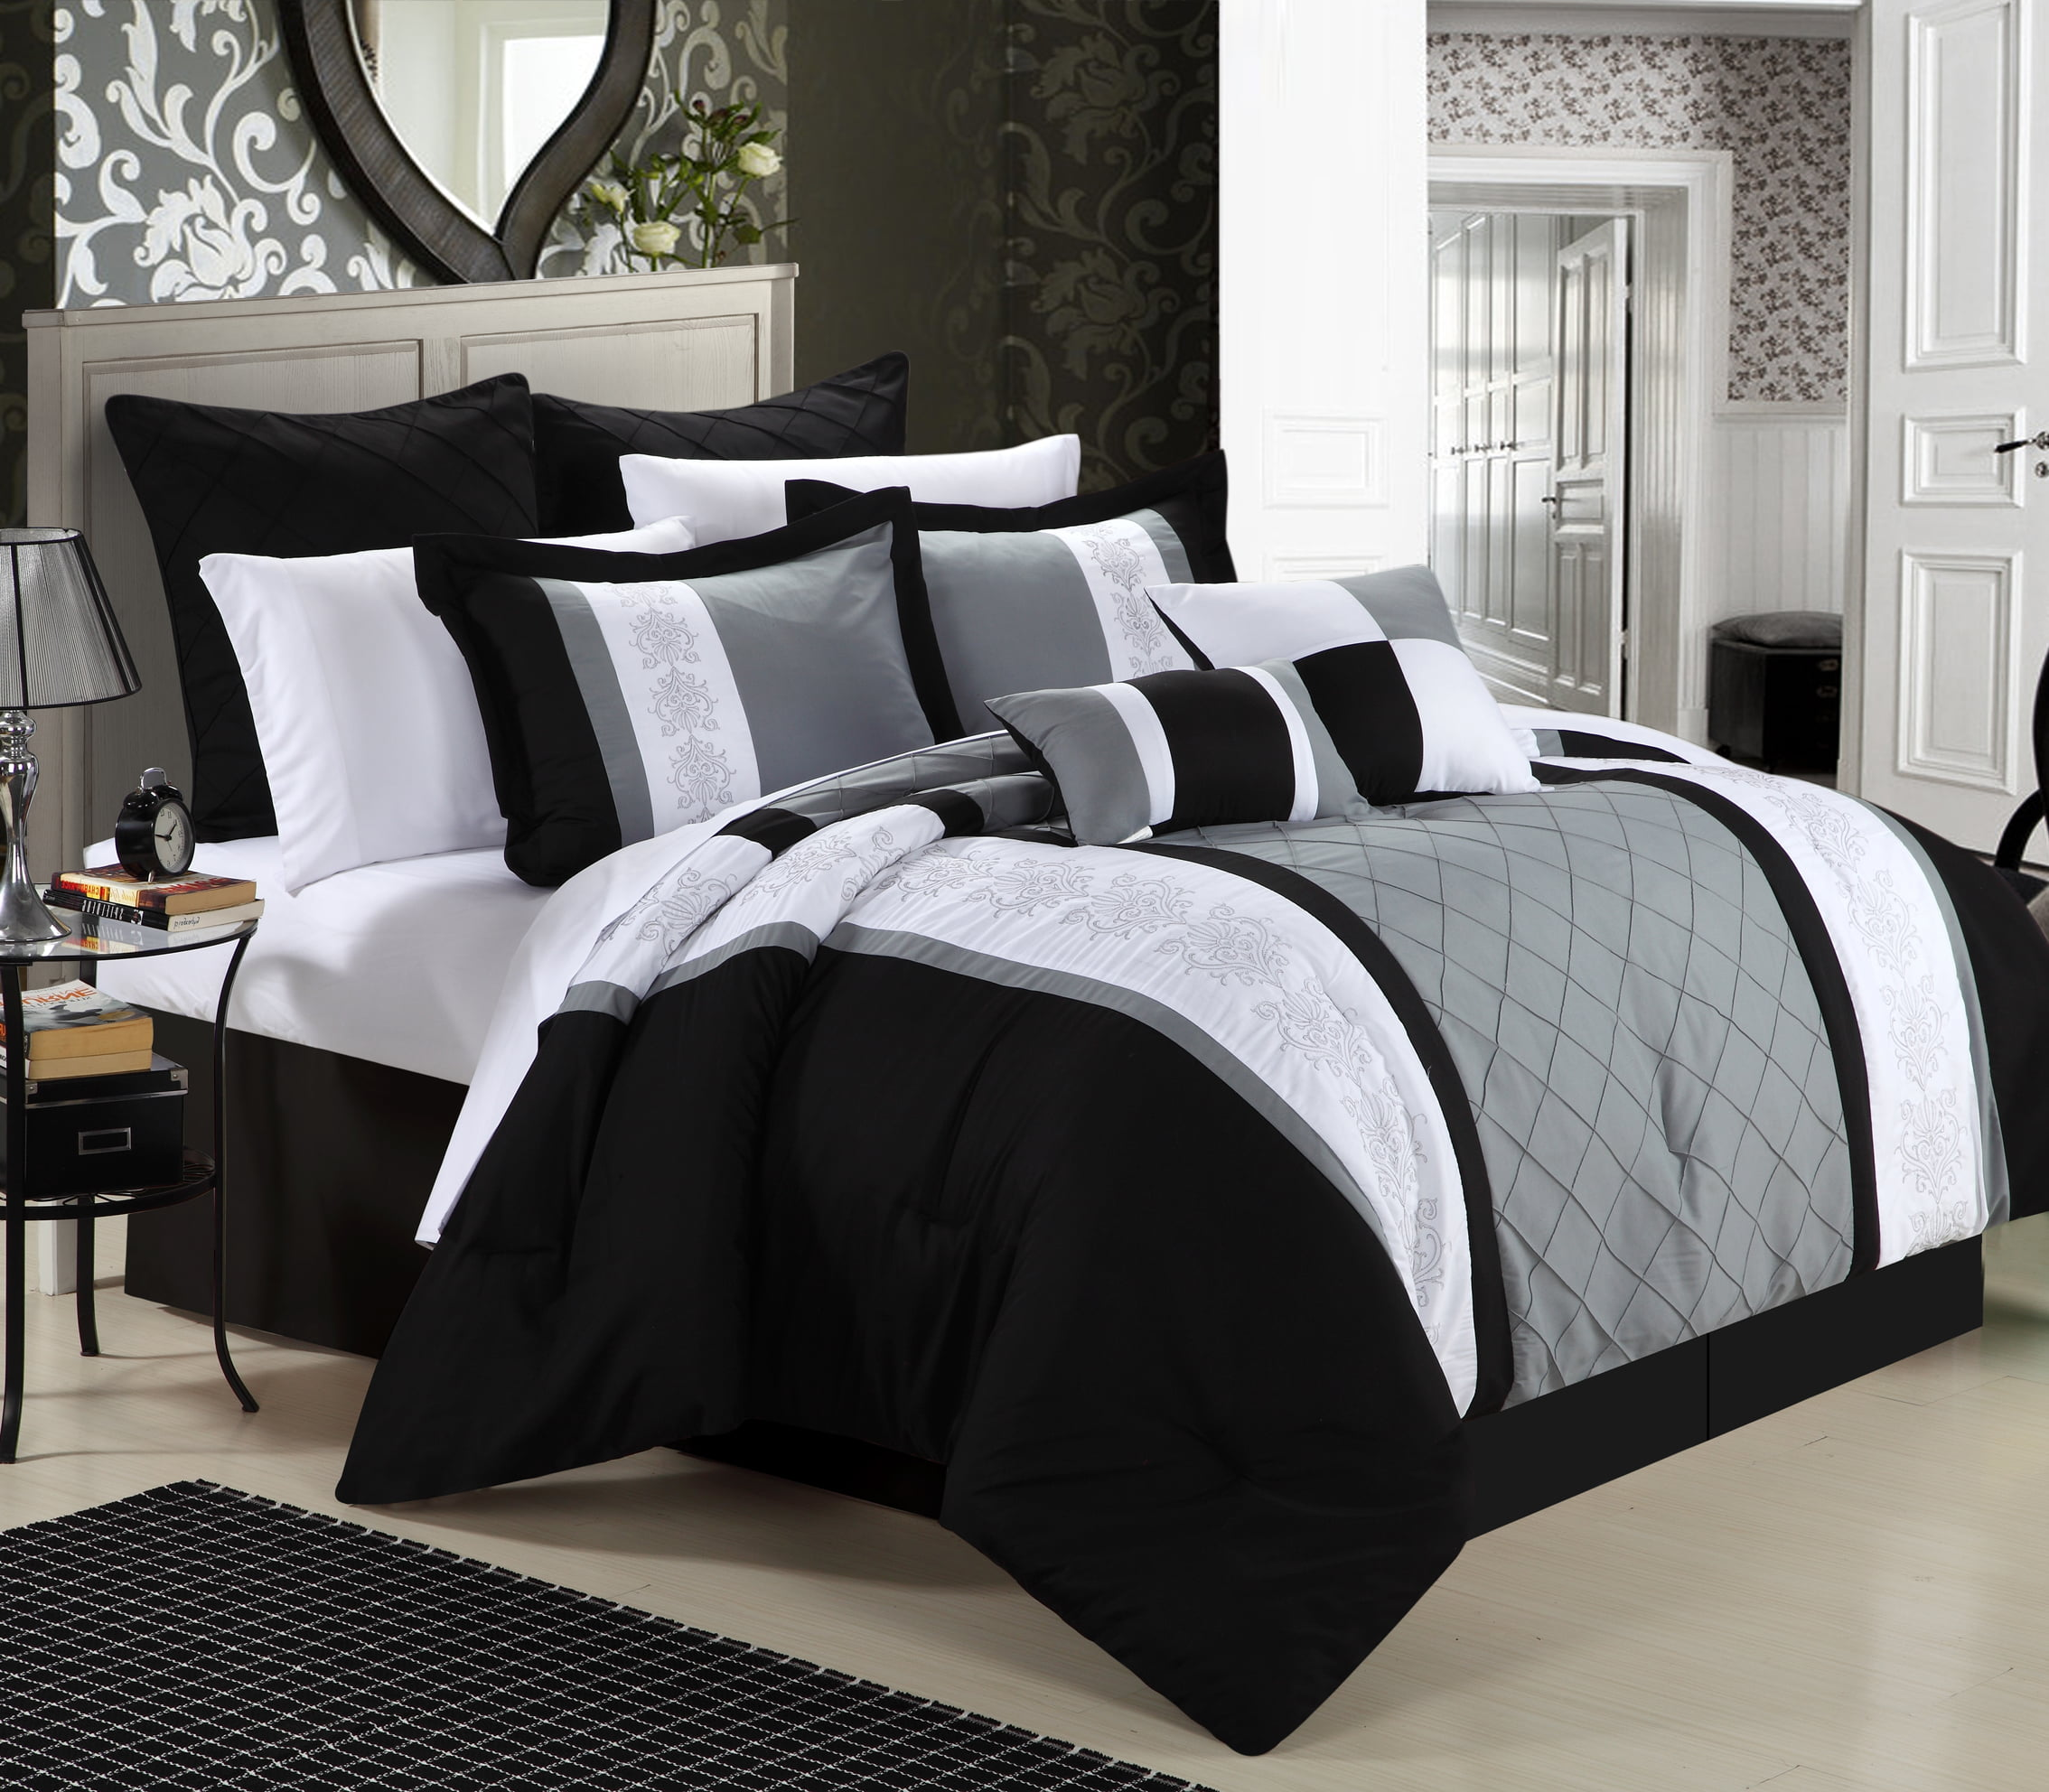 bedding sets oversized embossed bedroom luxury black size queen white comforter with bed and king red set solid